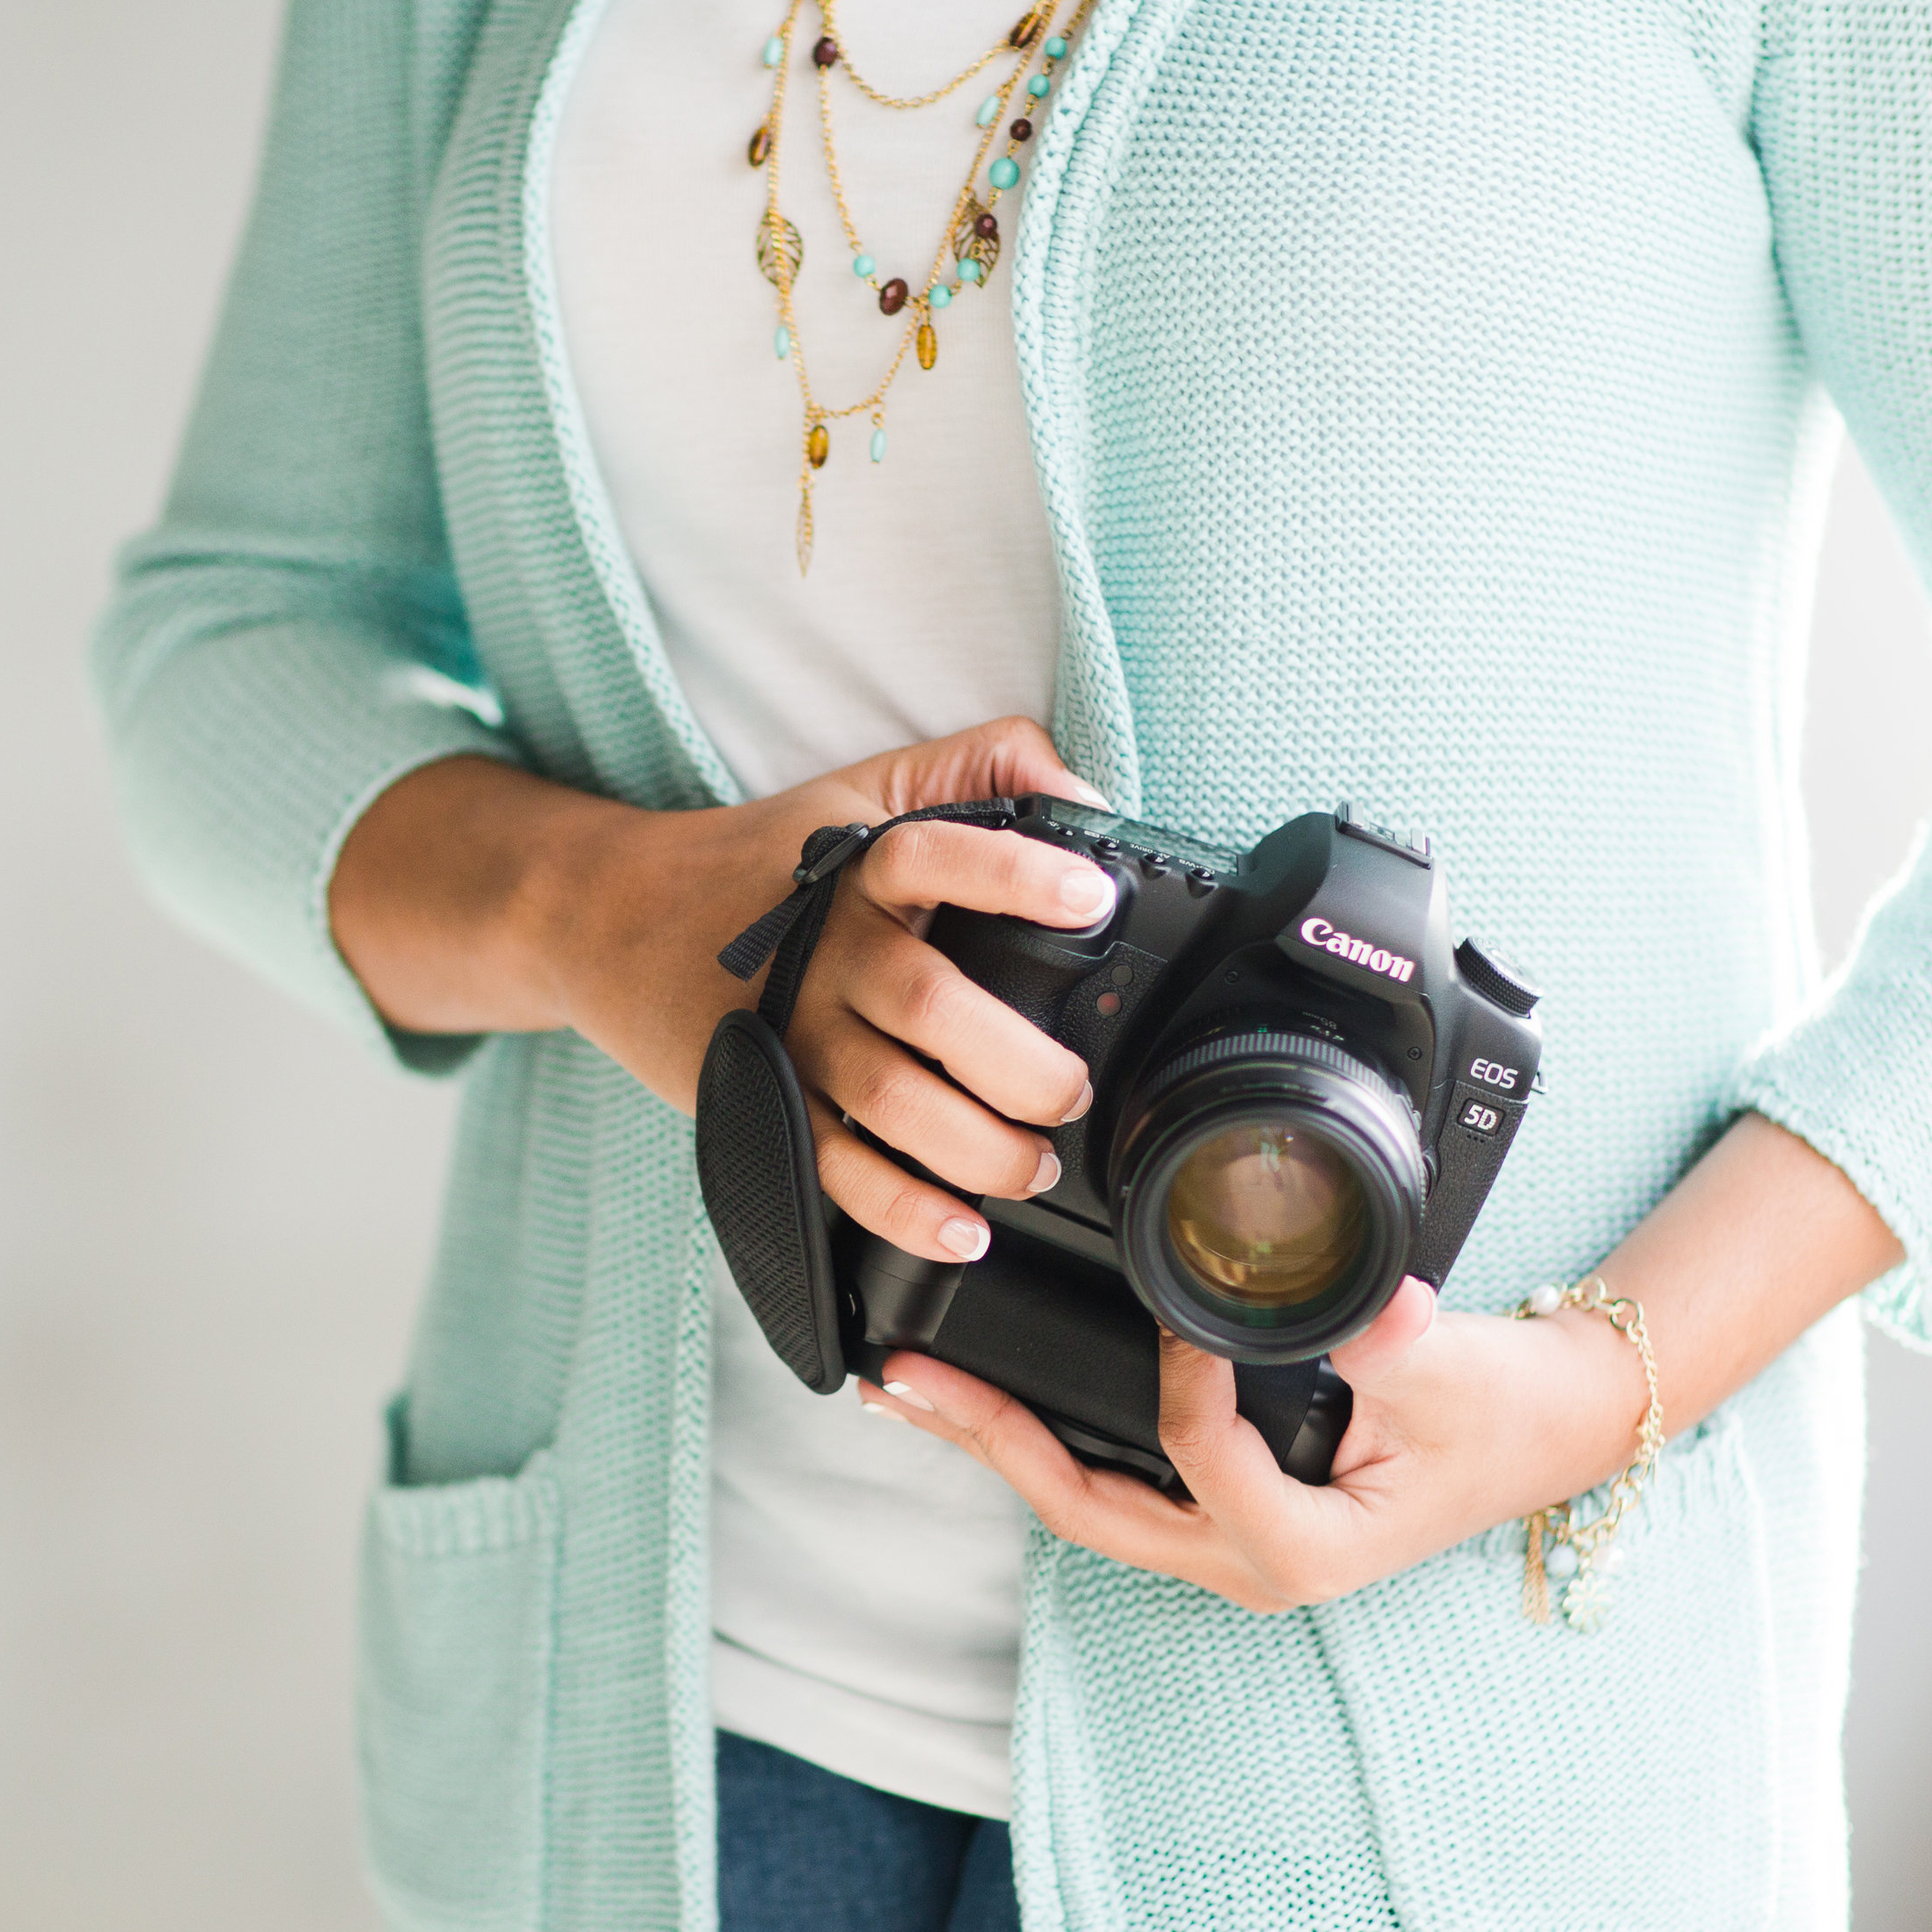 One on one photography and small business coaching with katelyn james